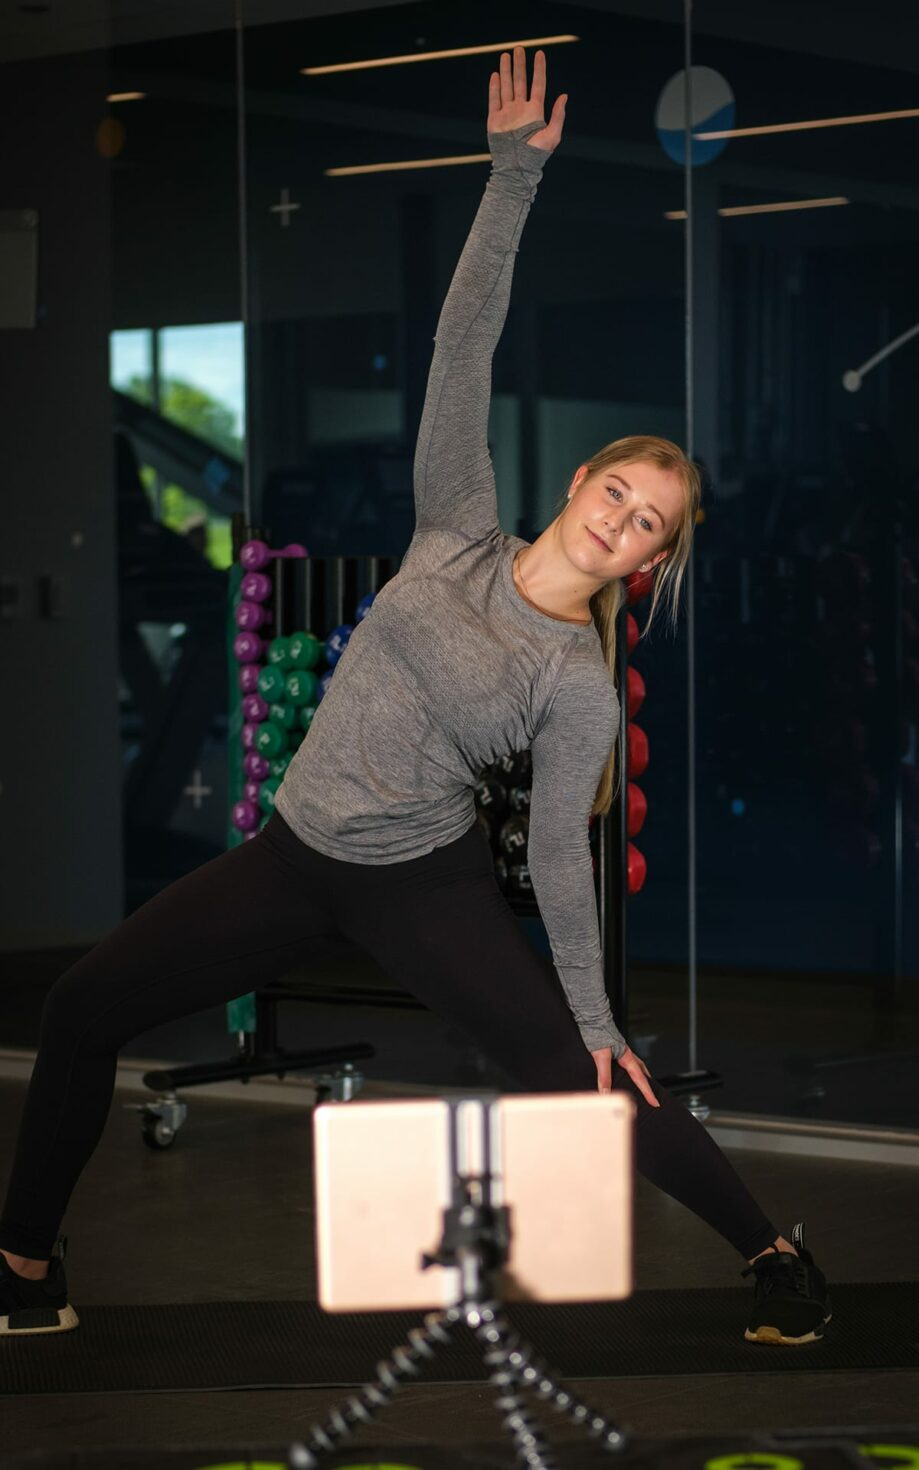 An instructor demonstrating stretching via videoconference